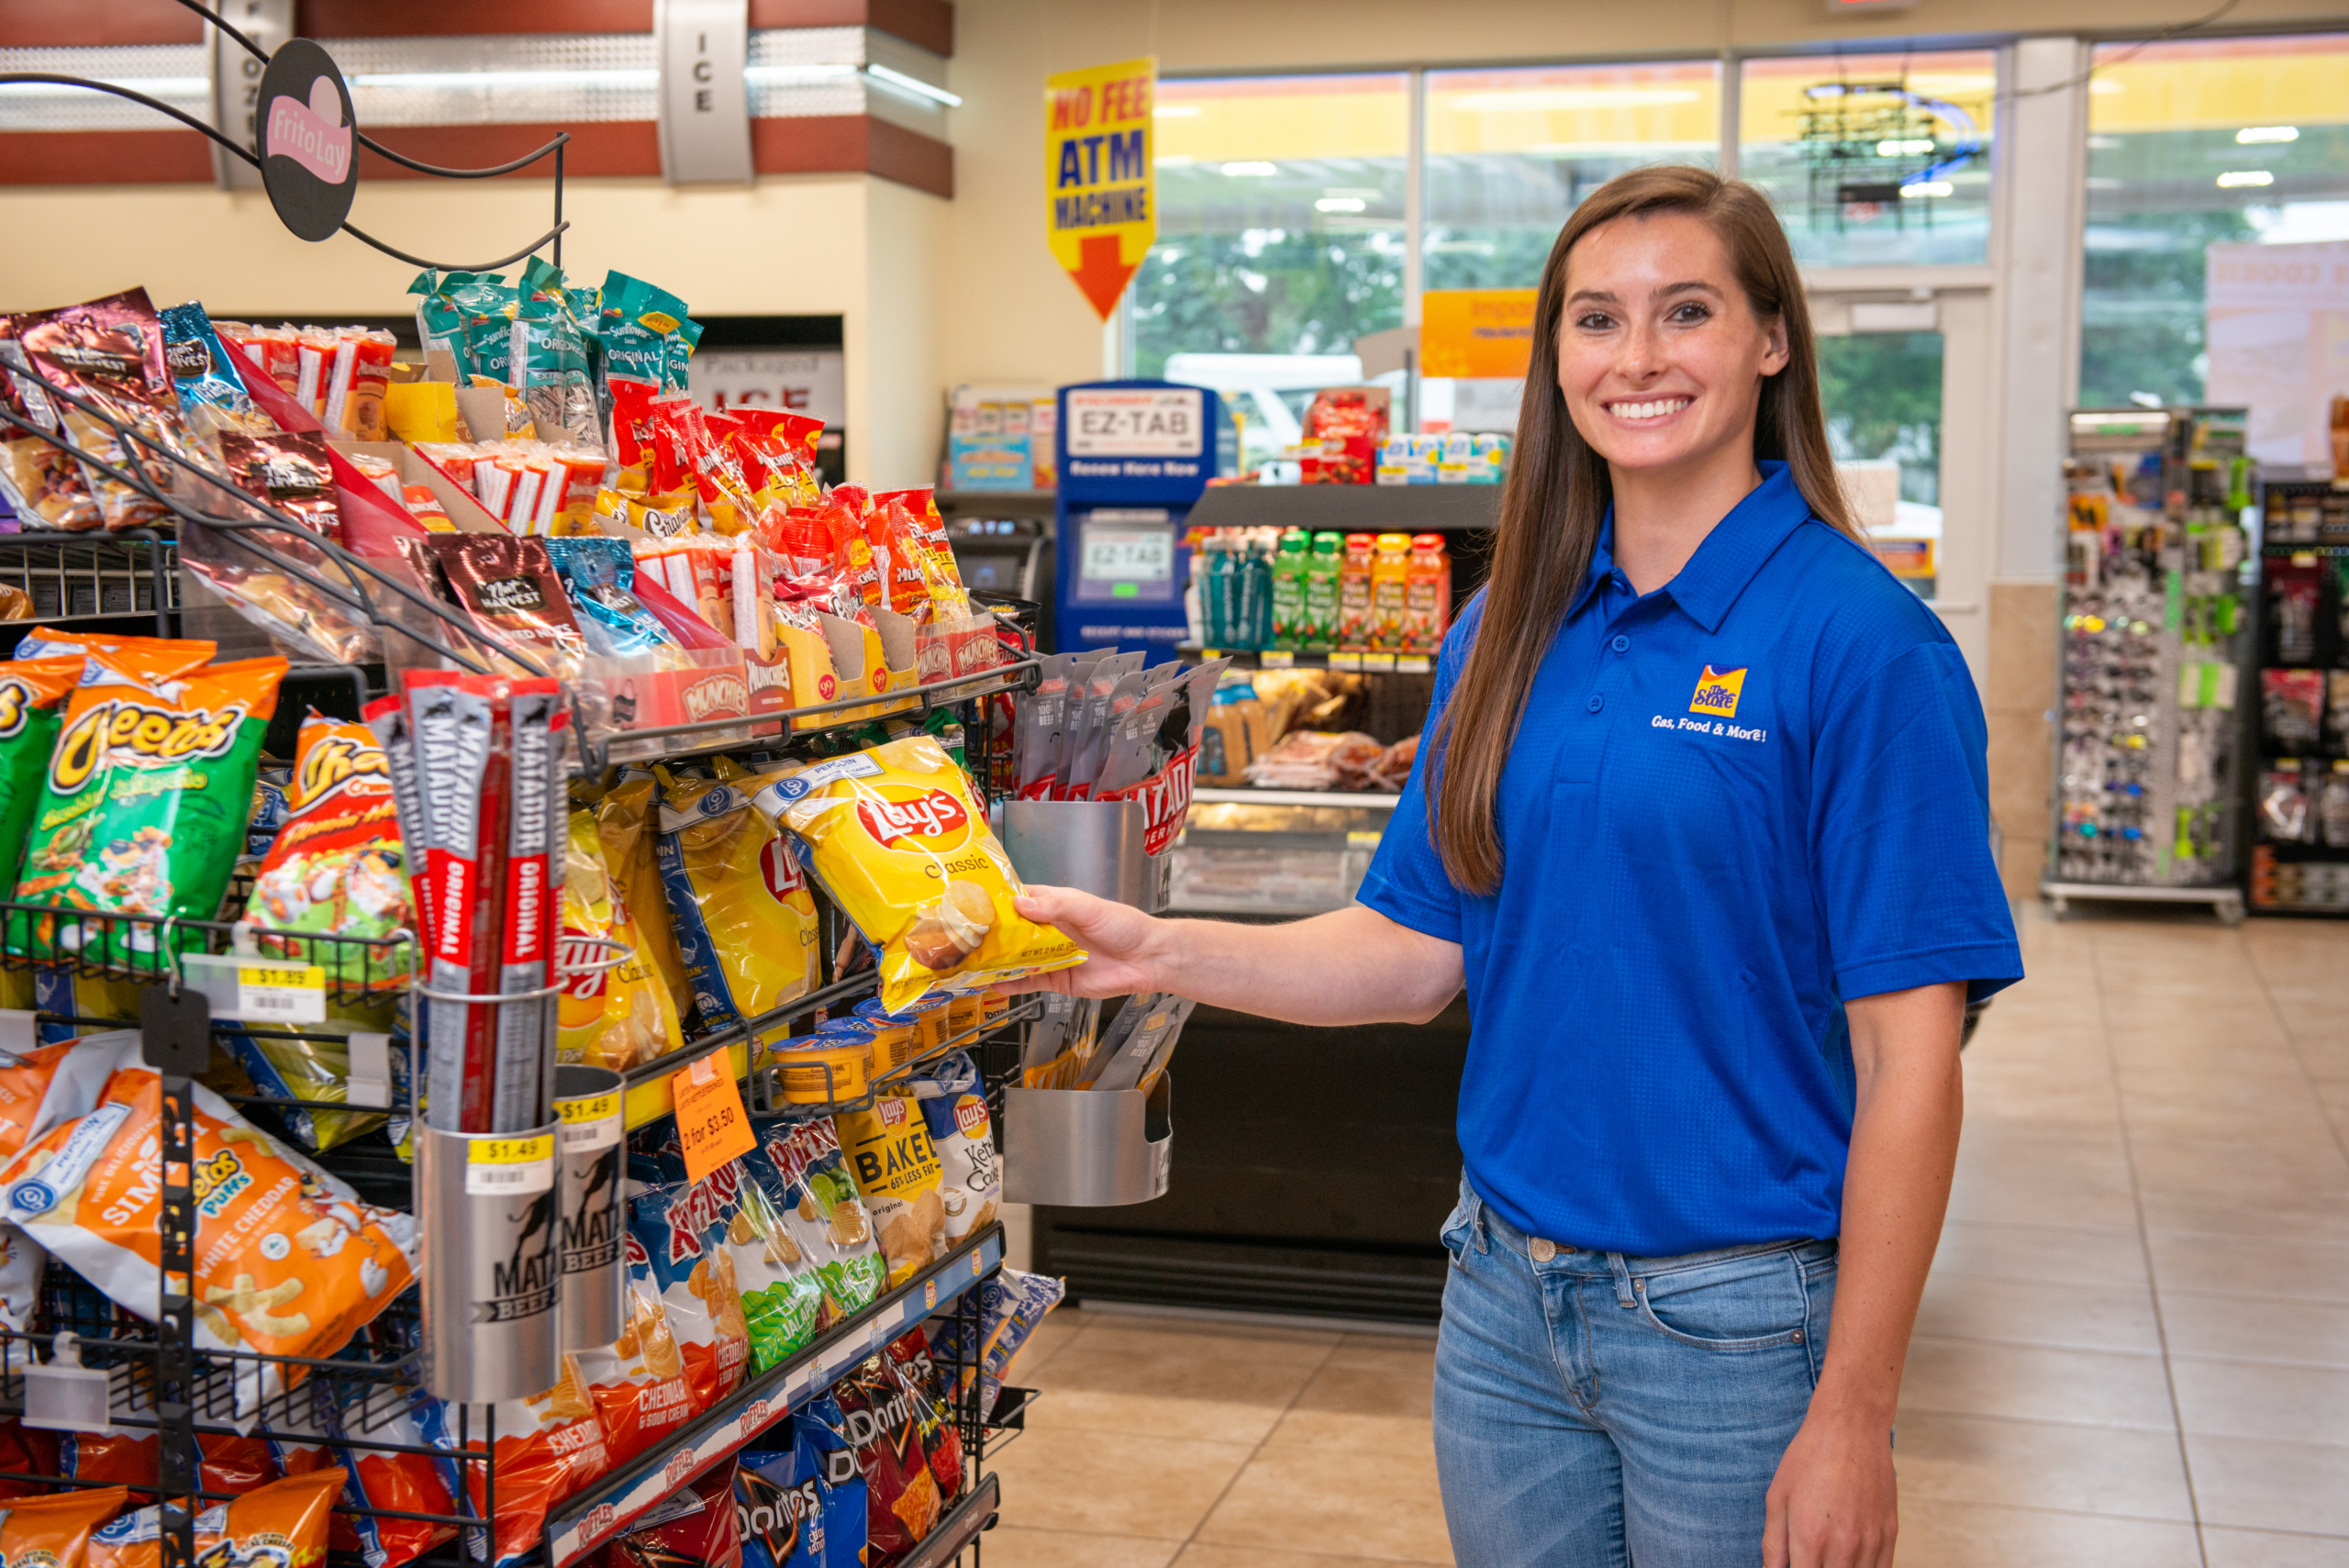 The Store Career Opportunities and Benefits